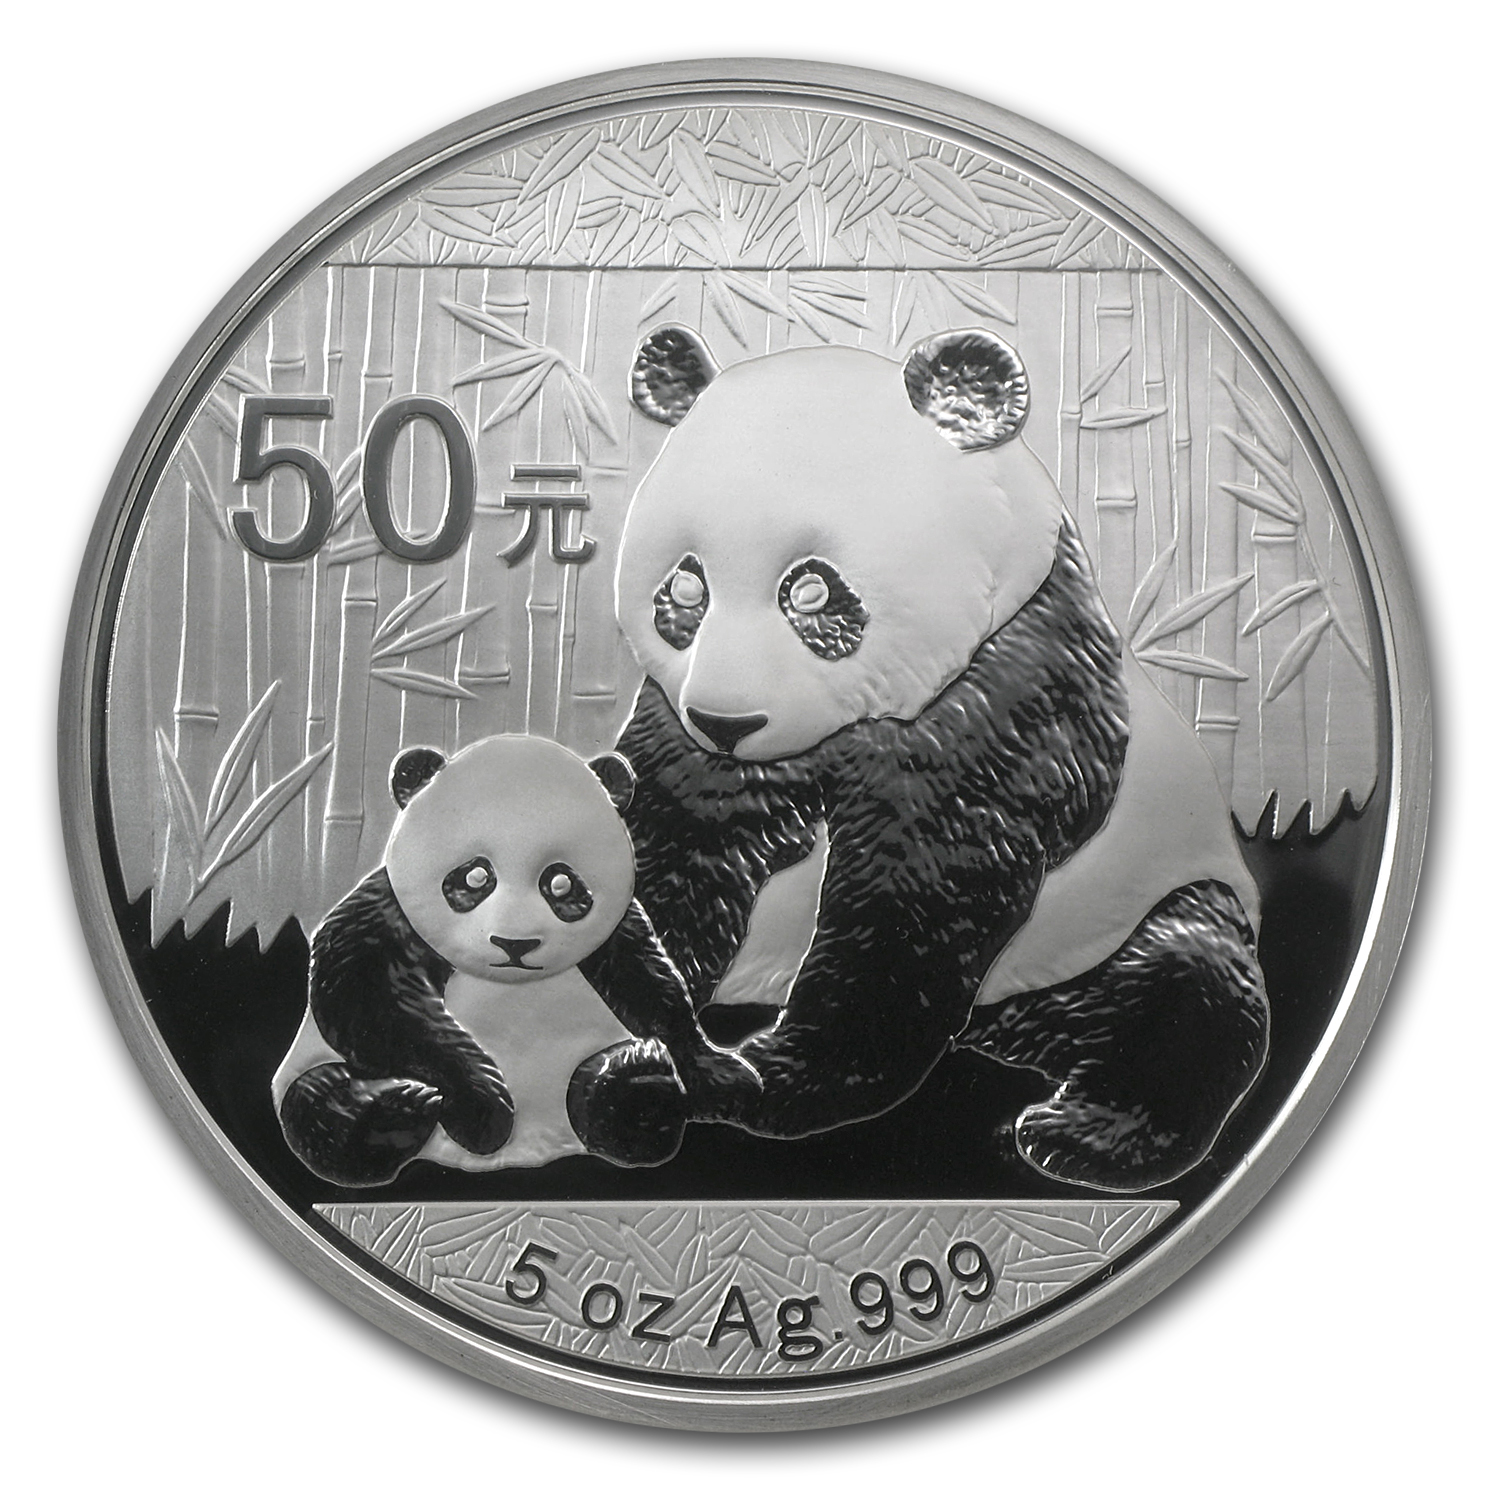 2012 - (5 oz) Silver Panda Proof NGC PF-68 UCAM